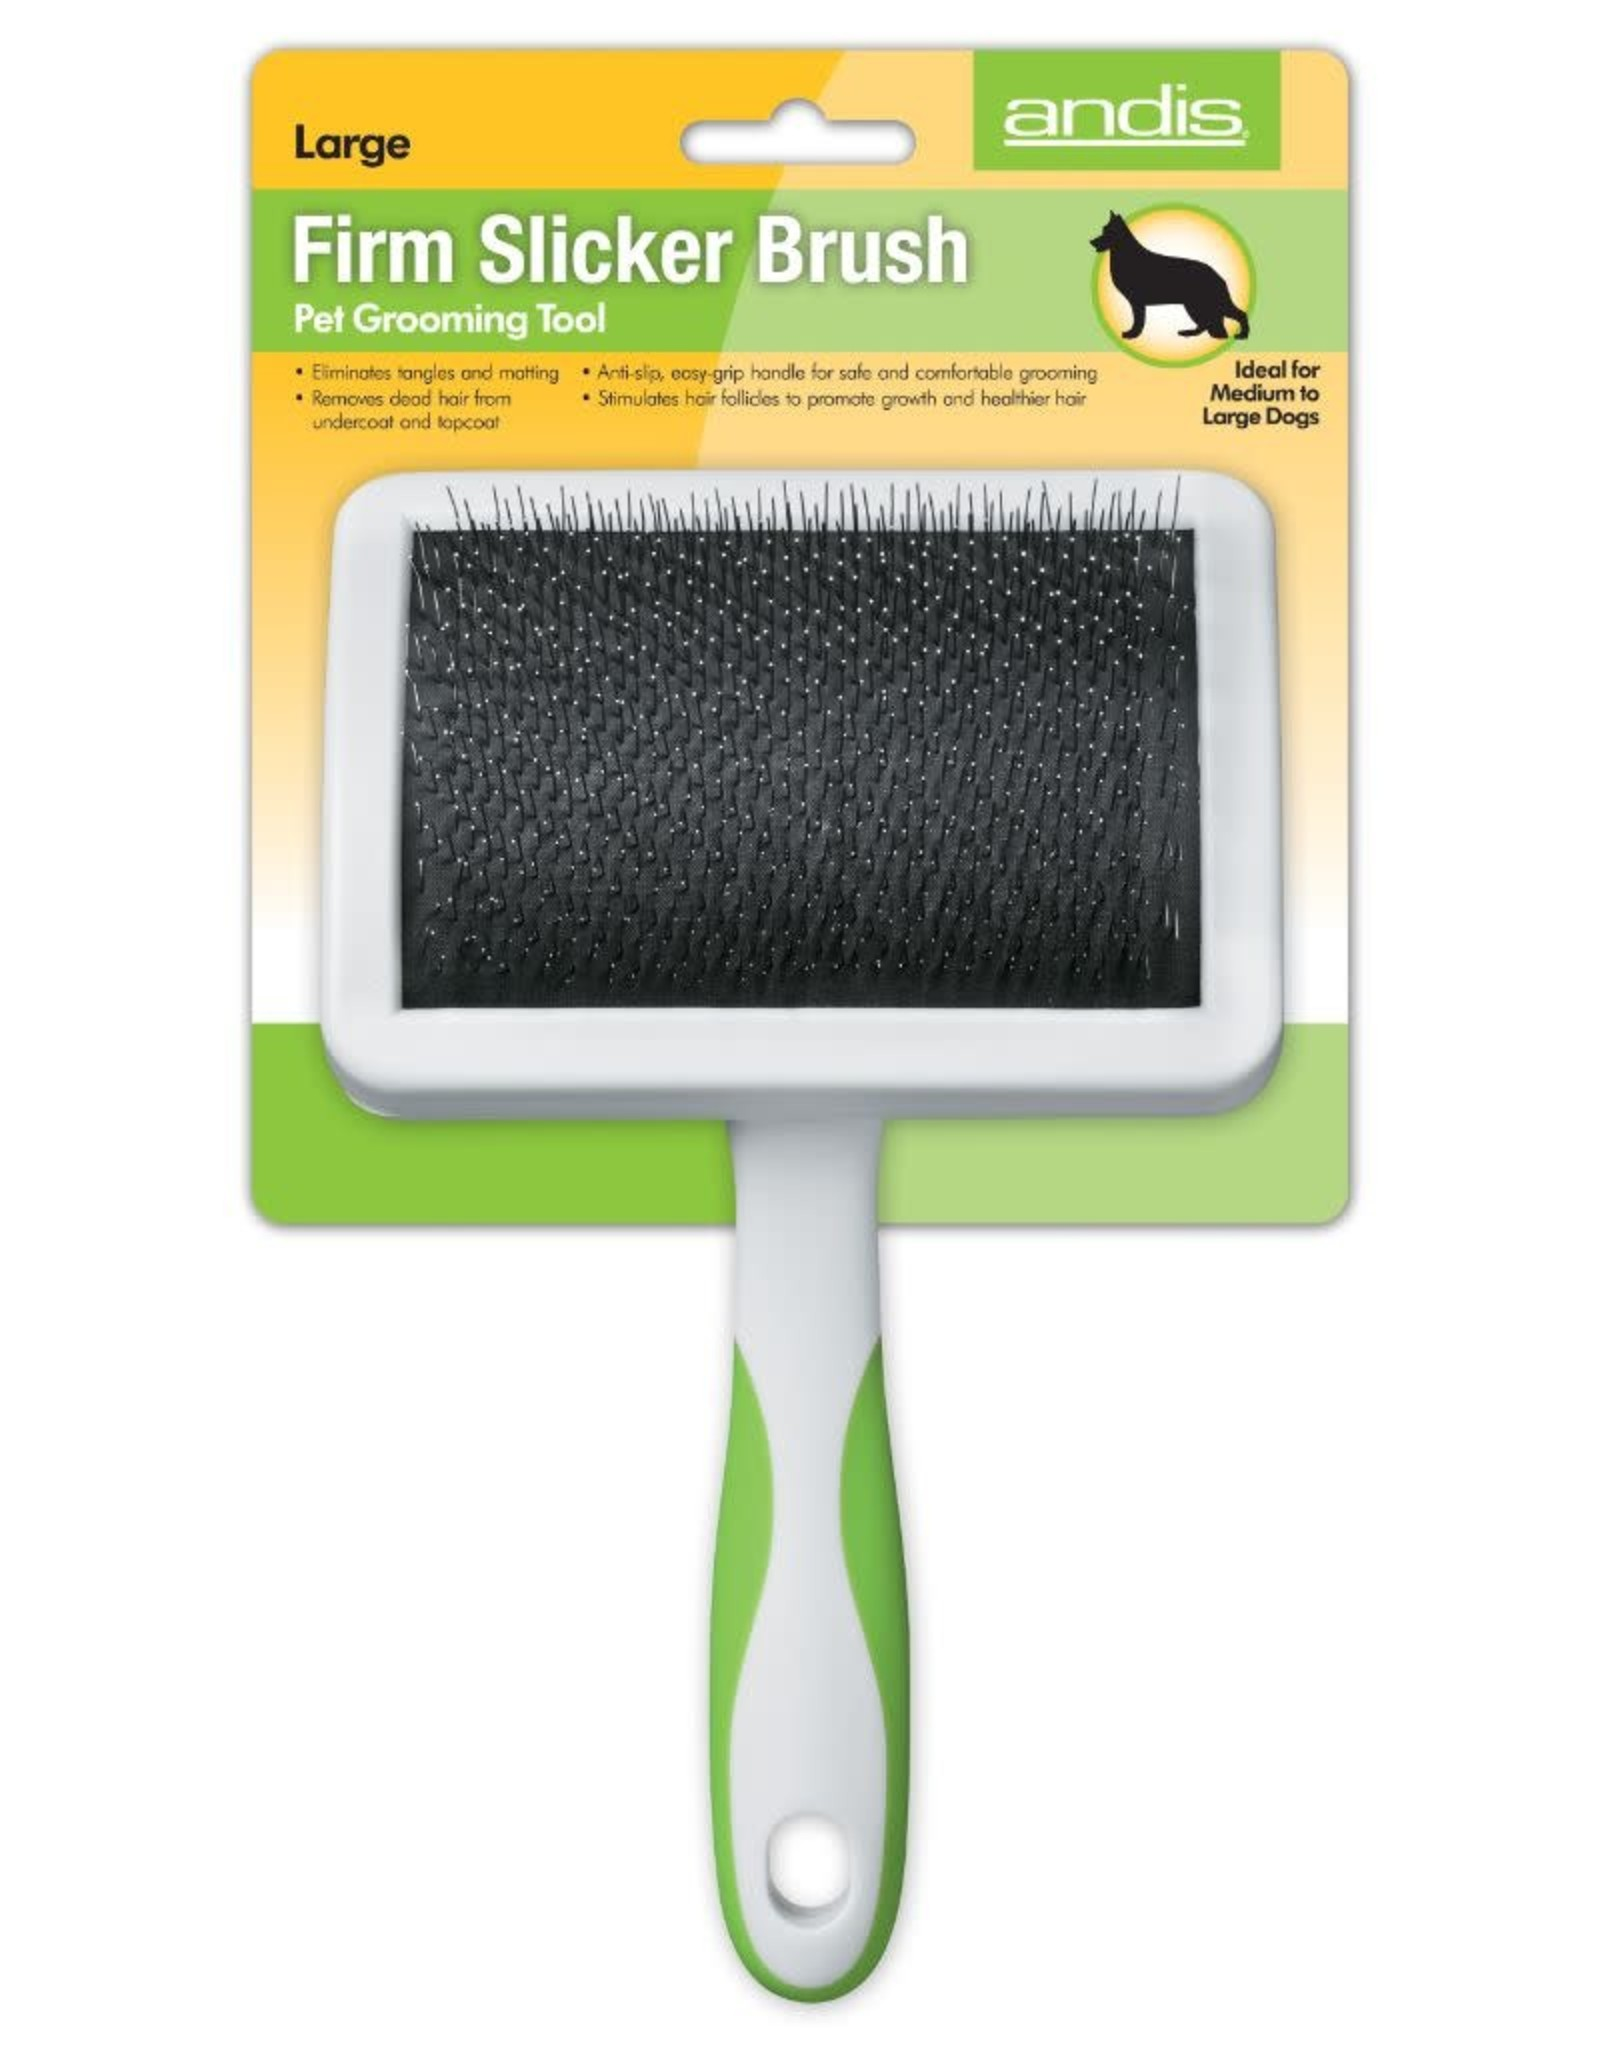 Andis Firm Slicker Brush Large